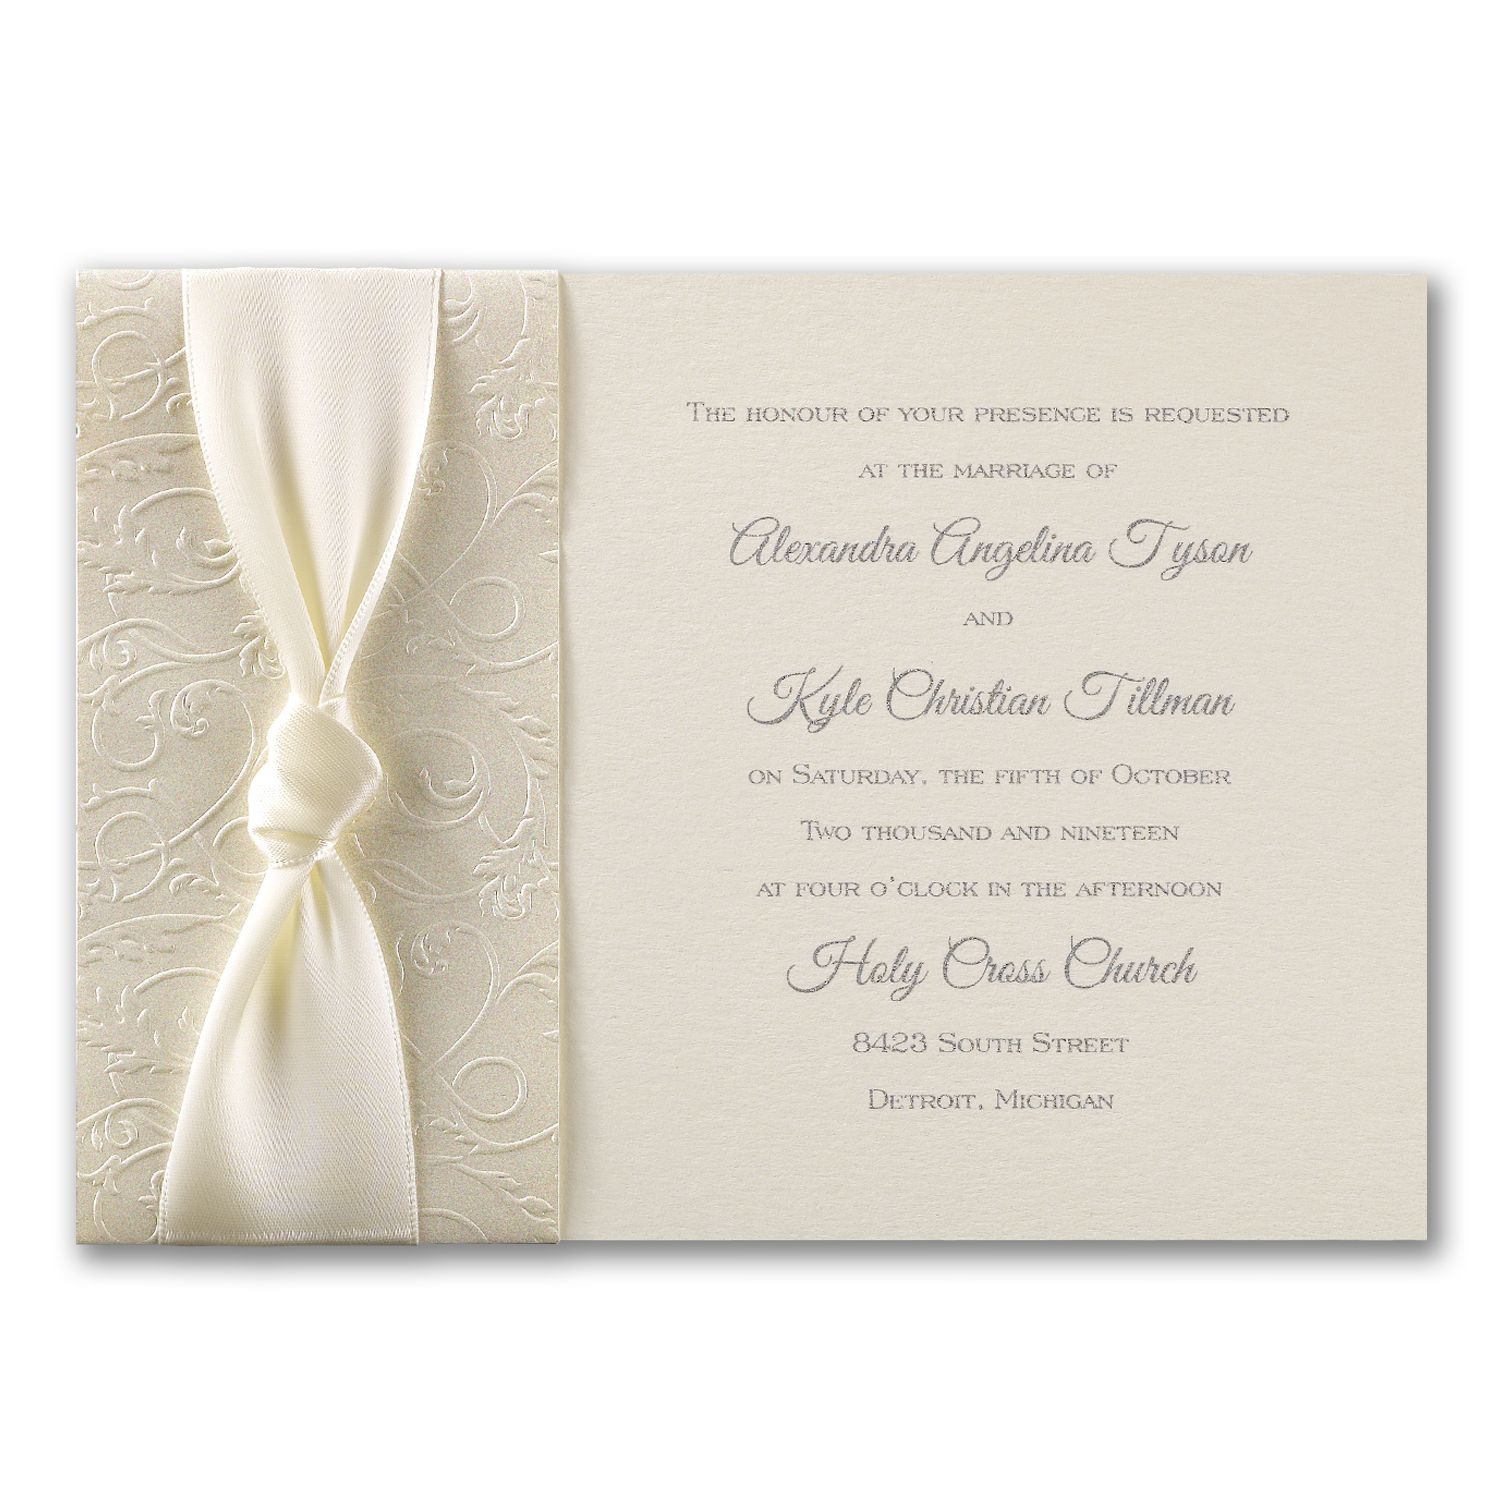 Filigree And Satin Invitation An Band Of Embossed Ecru Shimmer